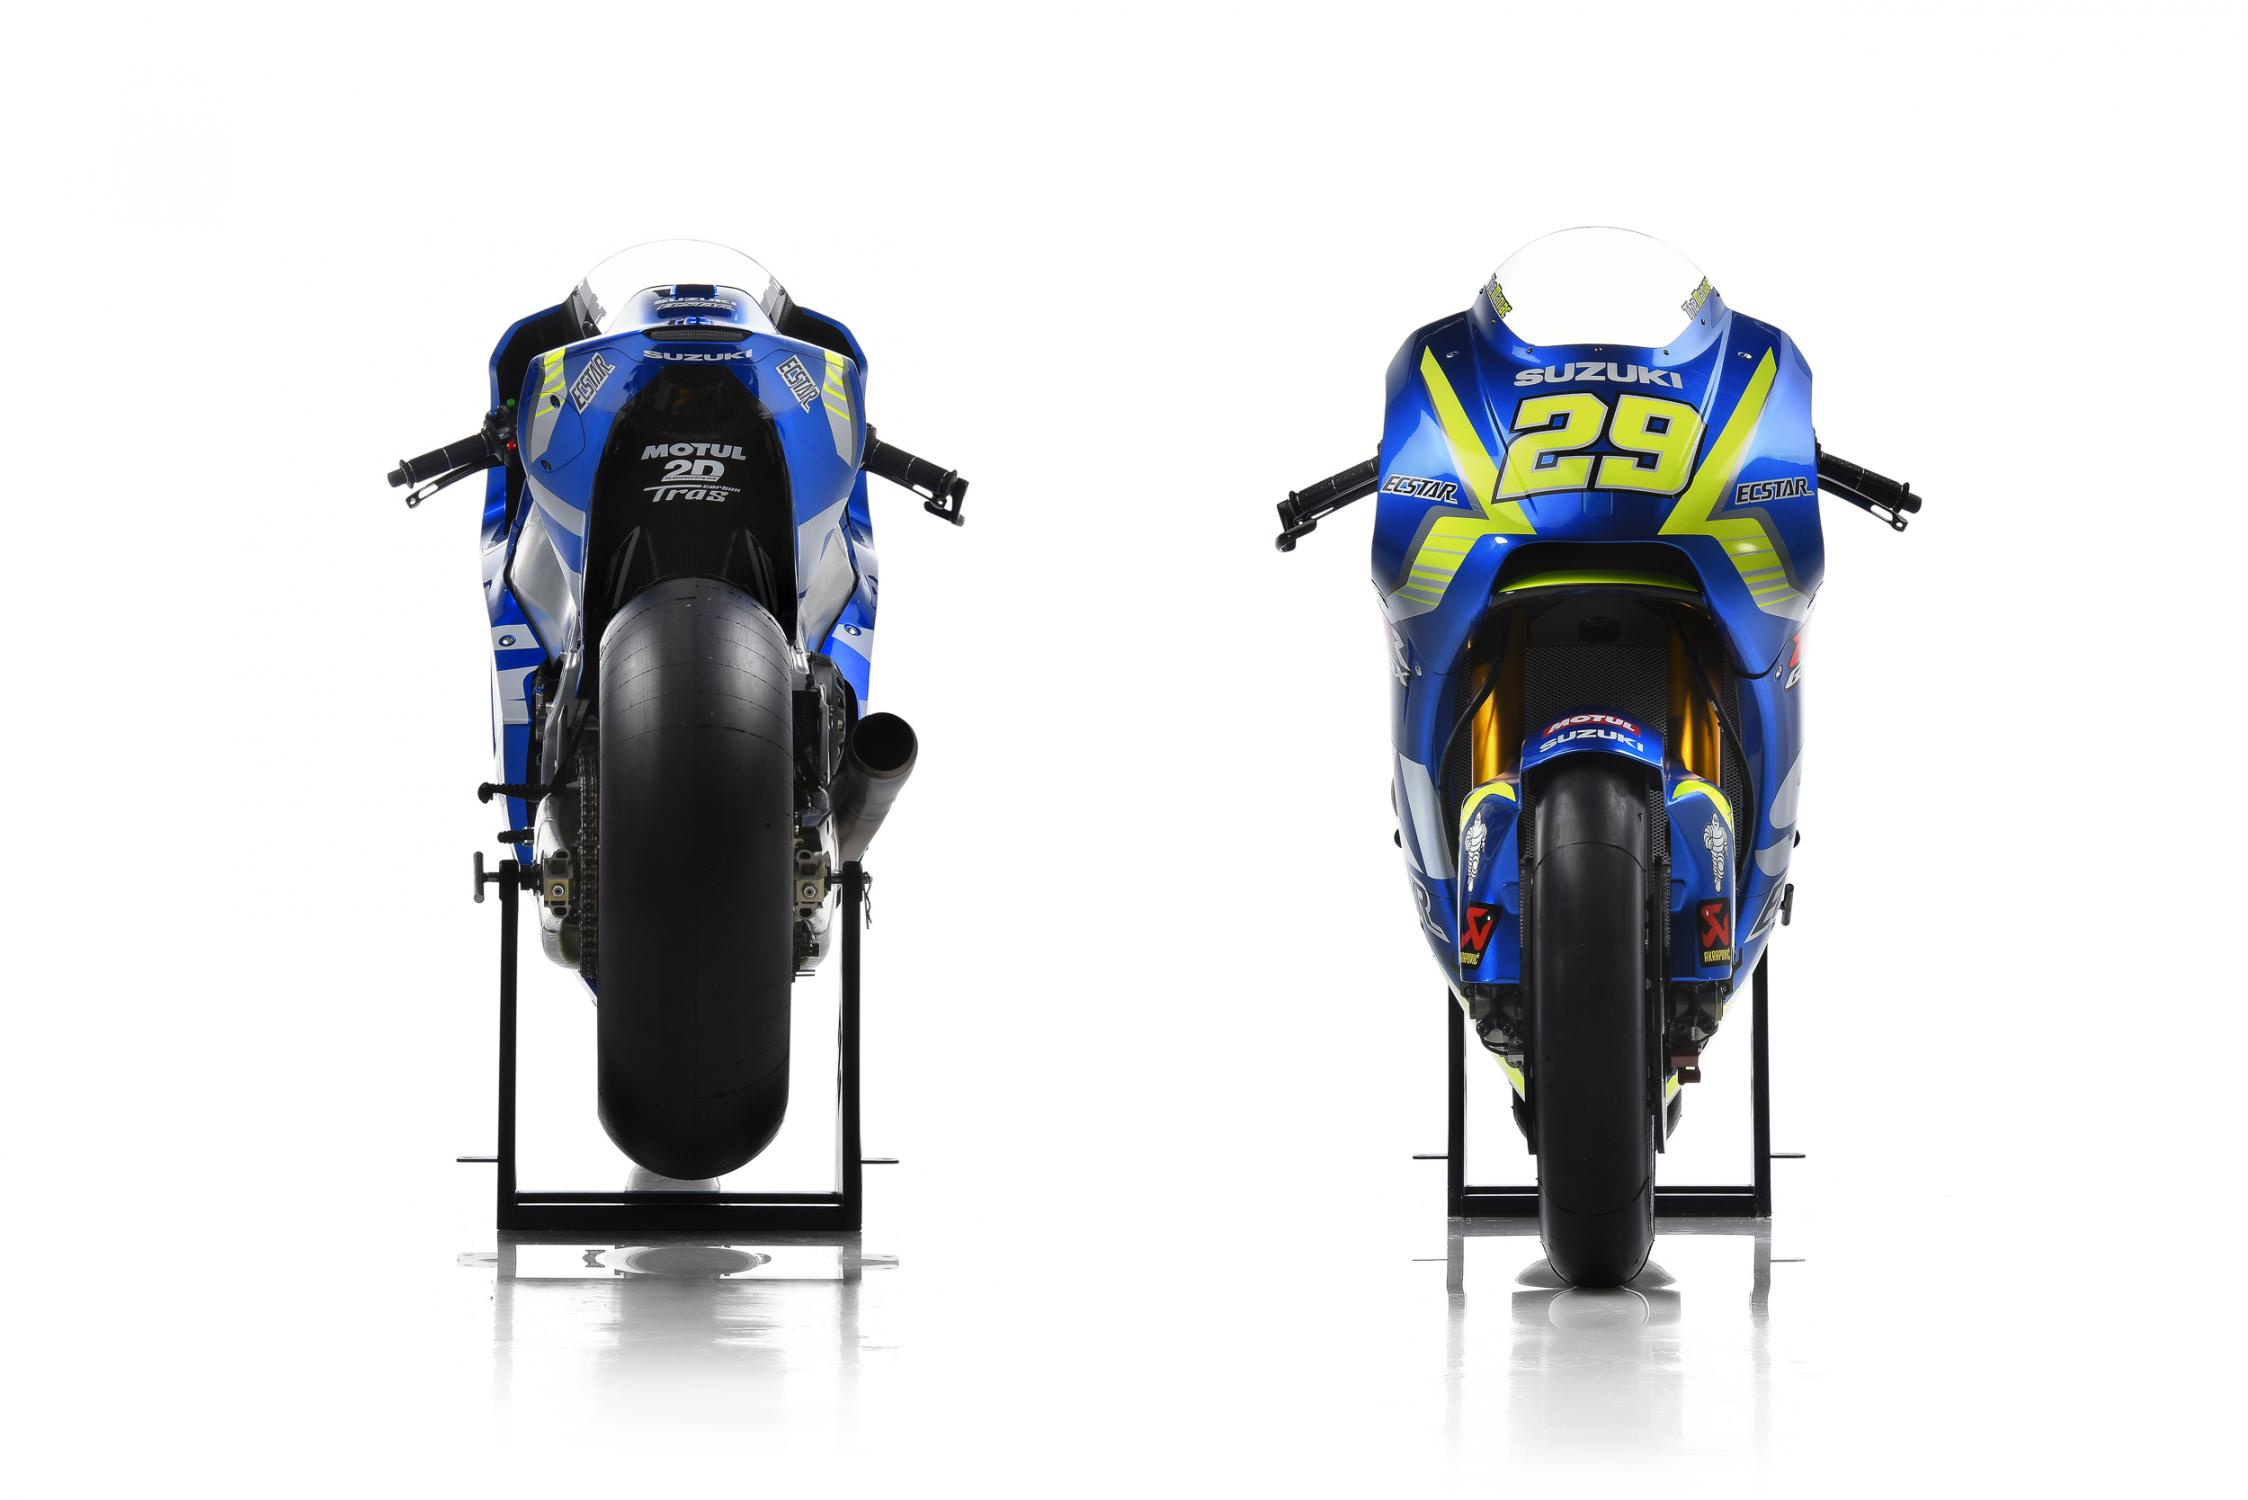 suzuki_gsx-rr_2017_29_front-and-back.gallery_full_top_fullscreen.jpg